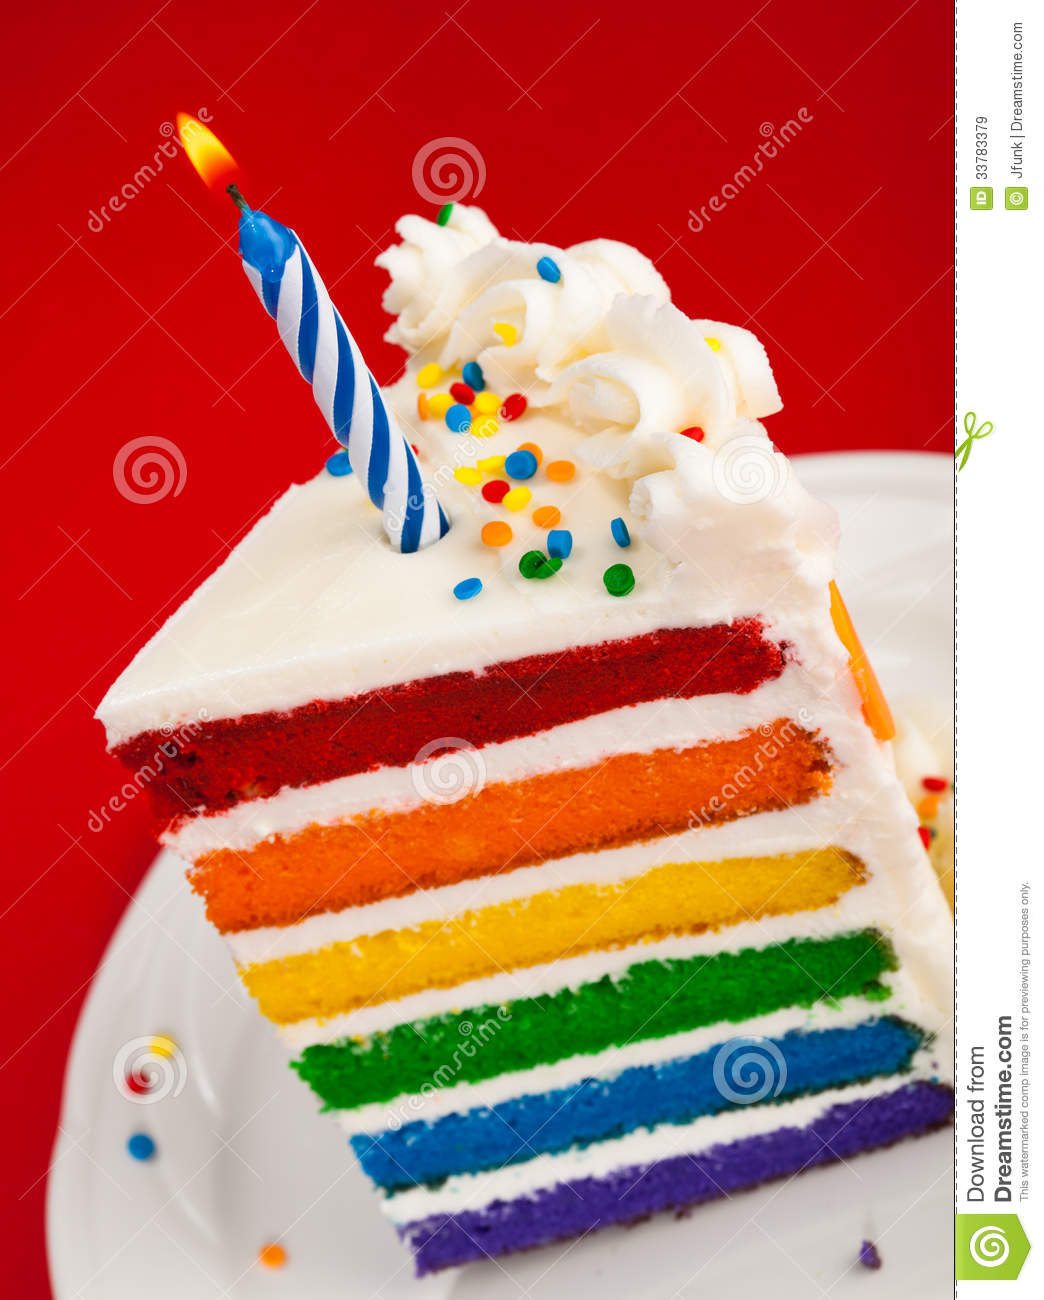 Rainbow Birthday Cake Slice Stock Image Image Of Slice Rainbow